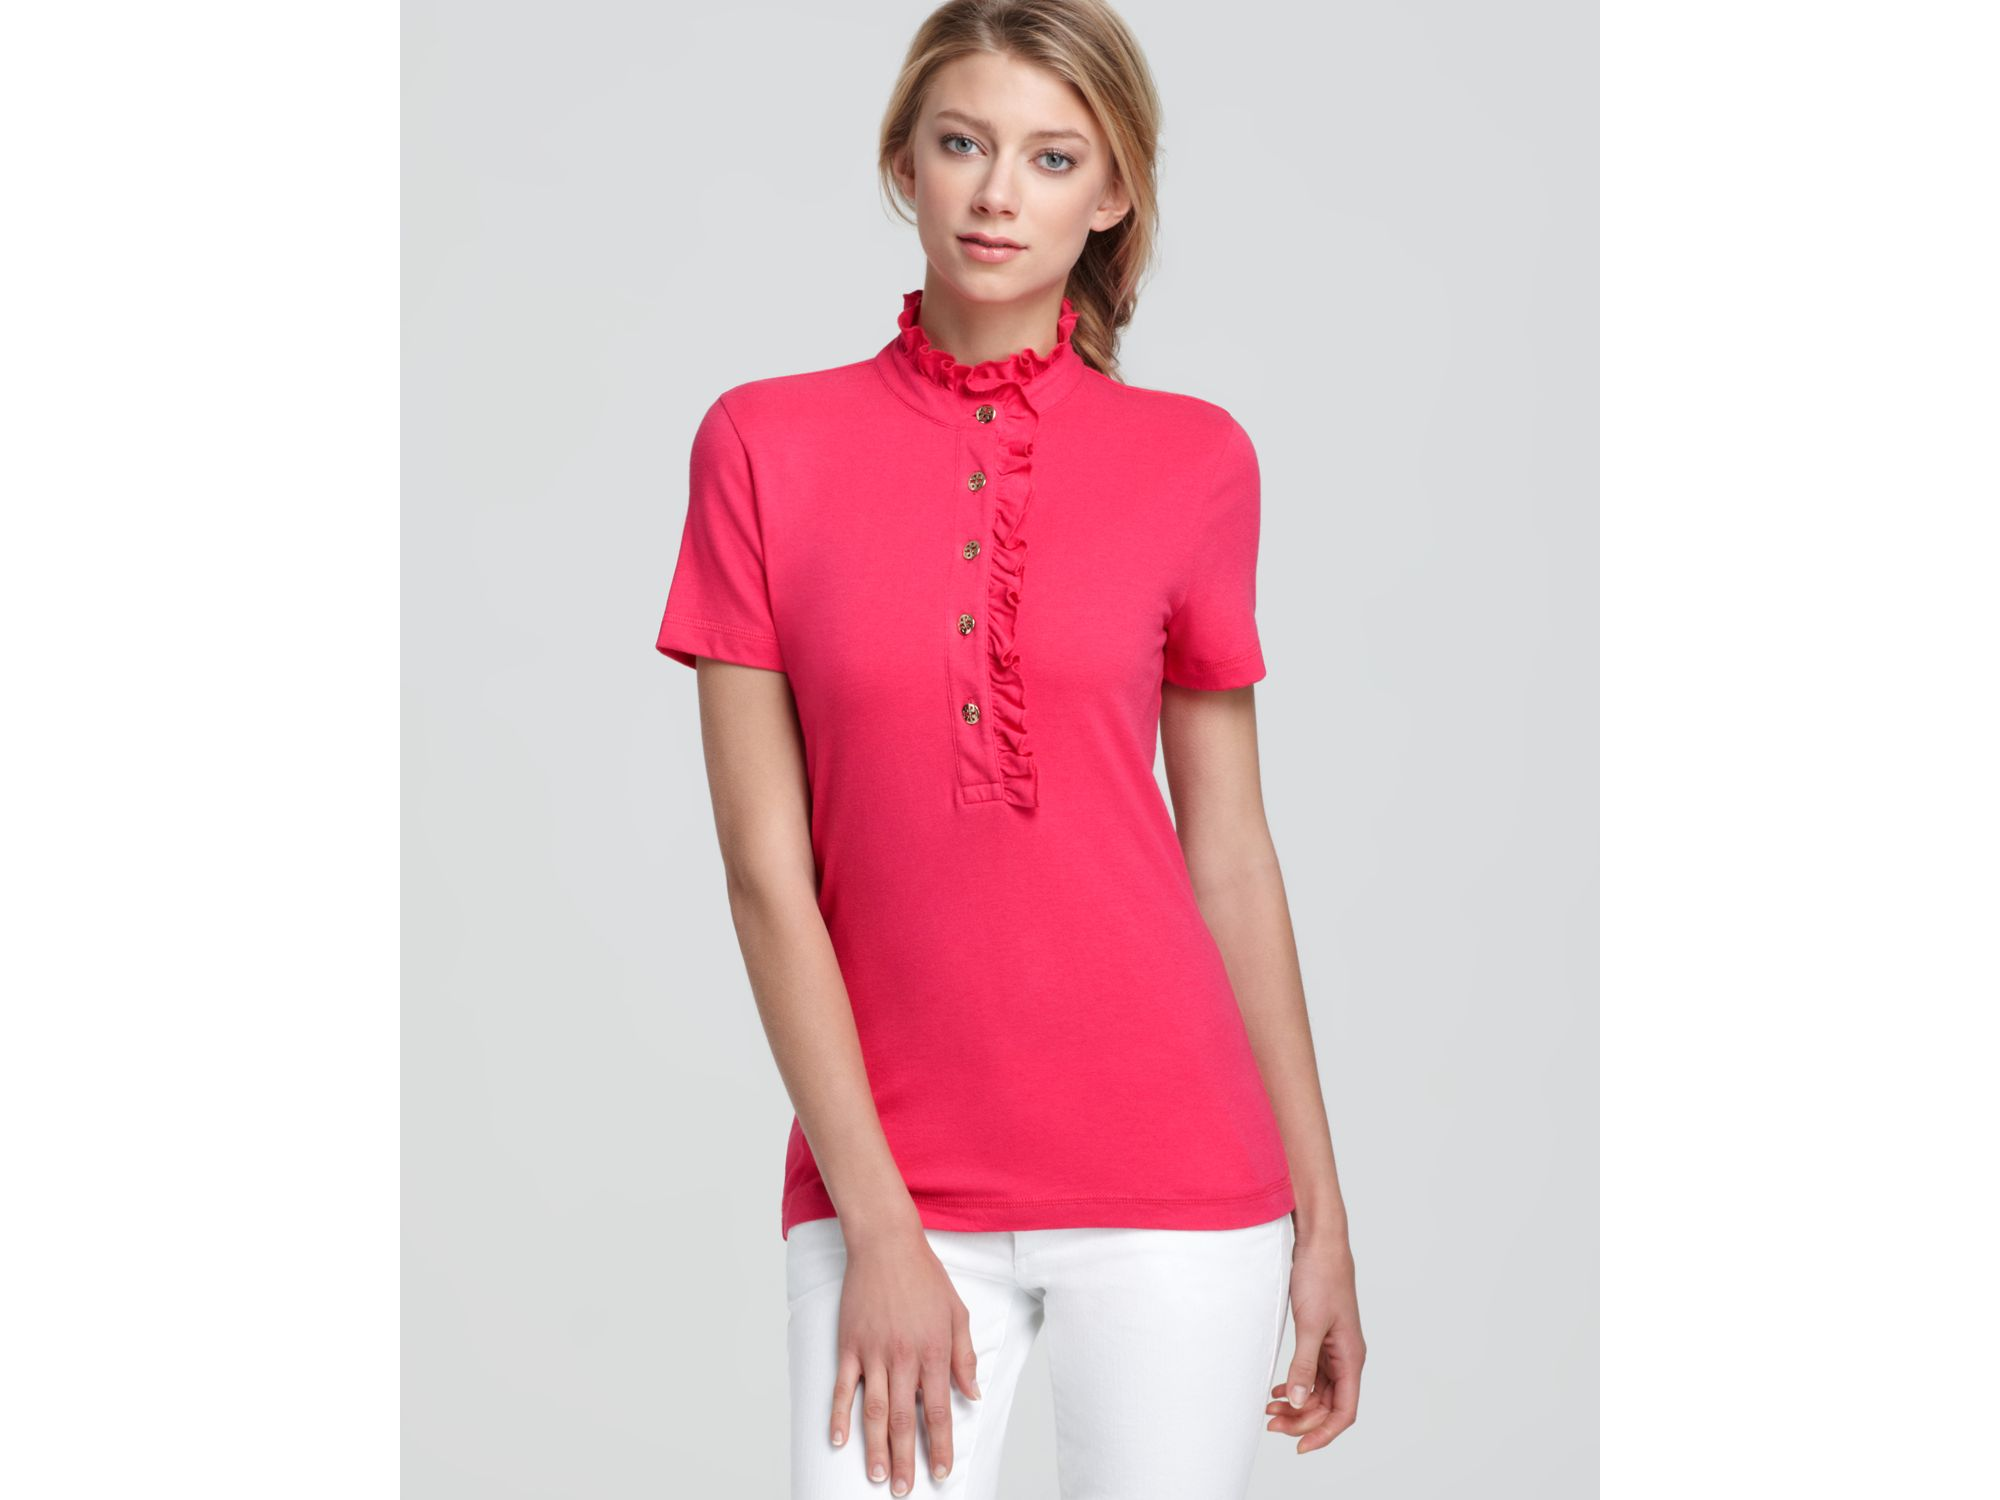 9d0fadecbf6 Lyst - Tory Burch Lidia Polo Shirt in Pink